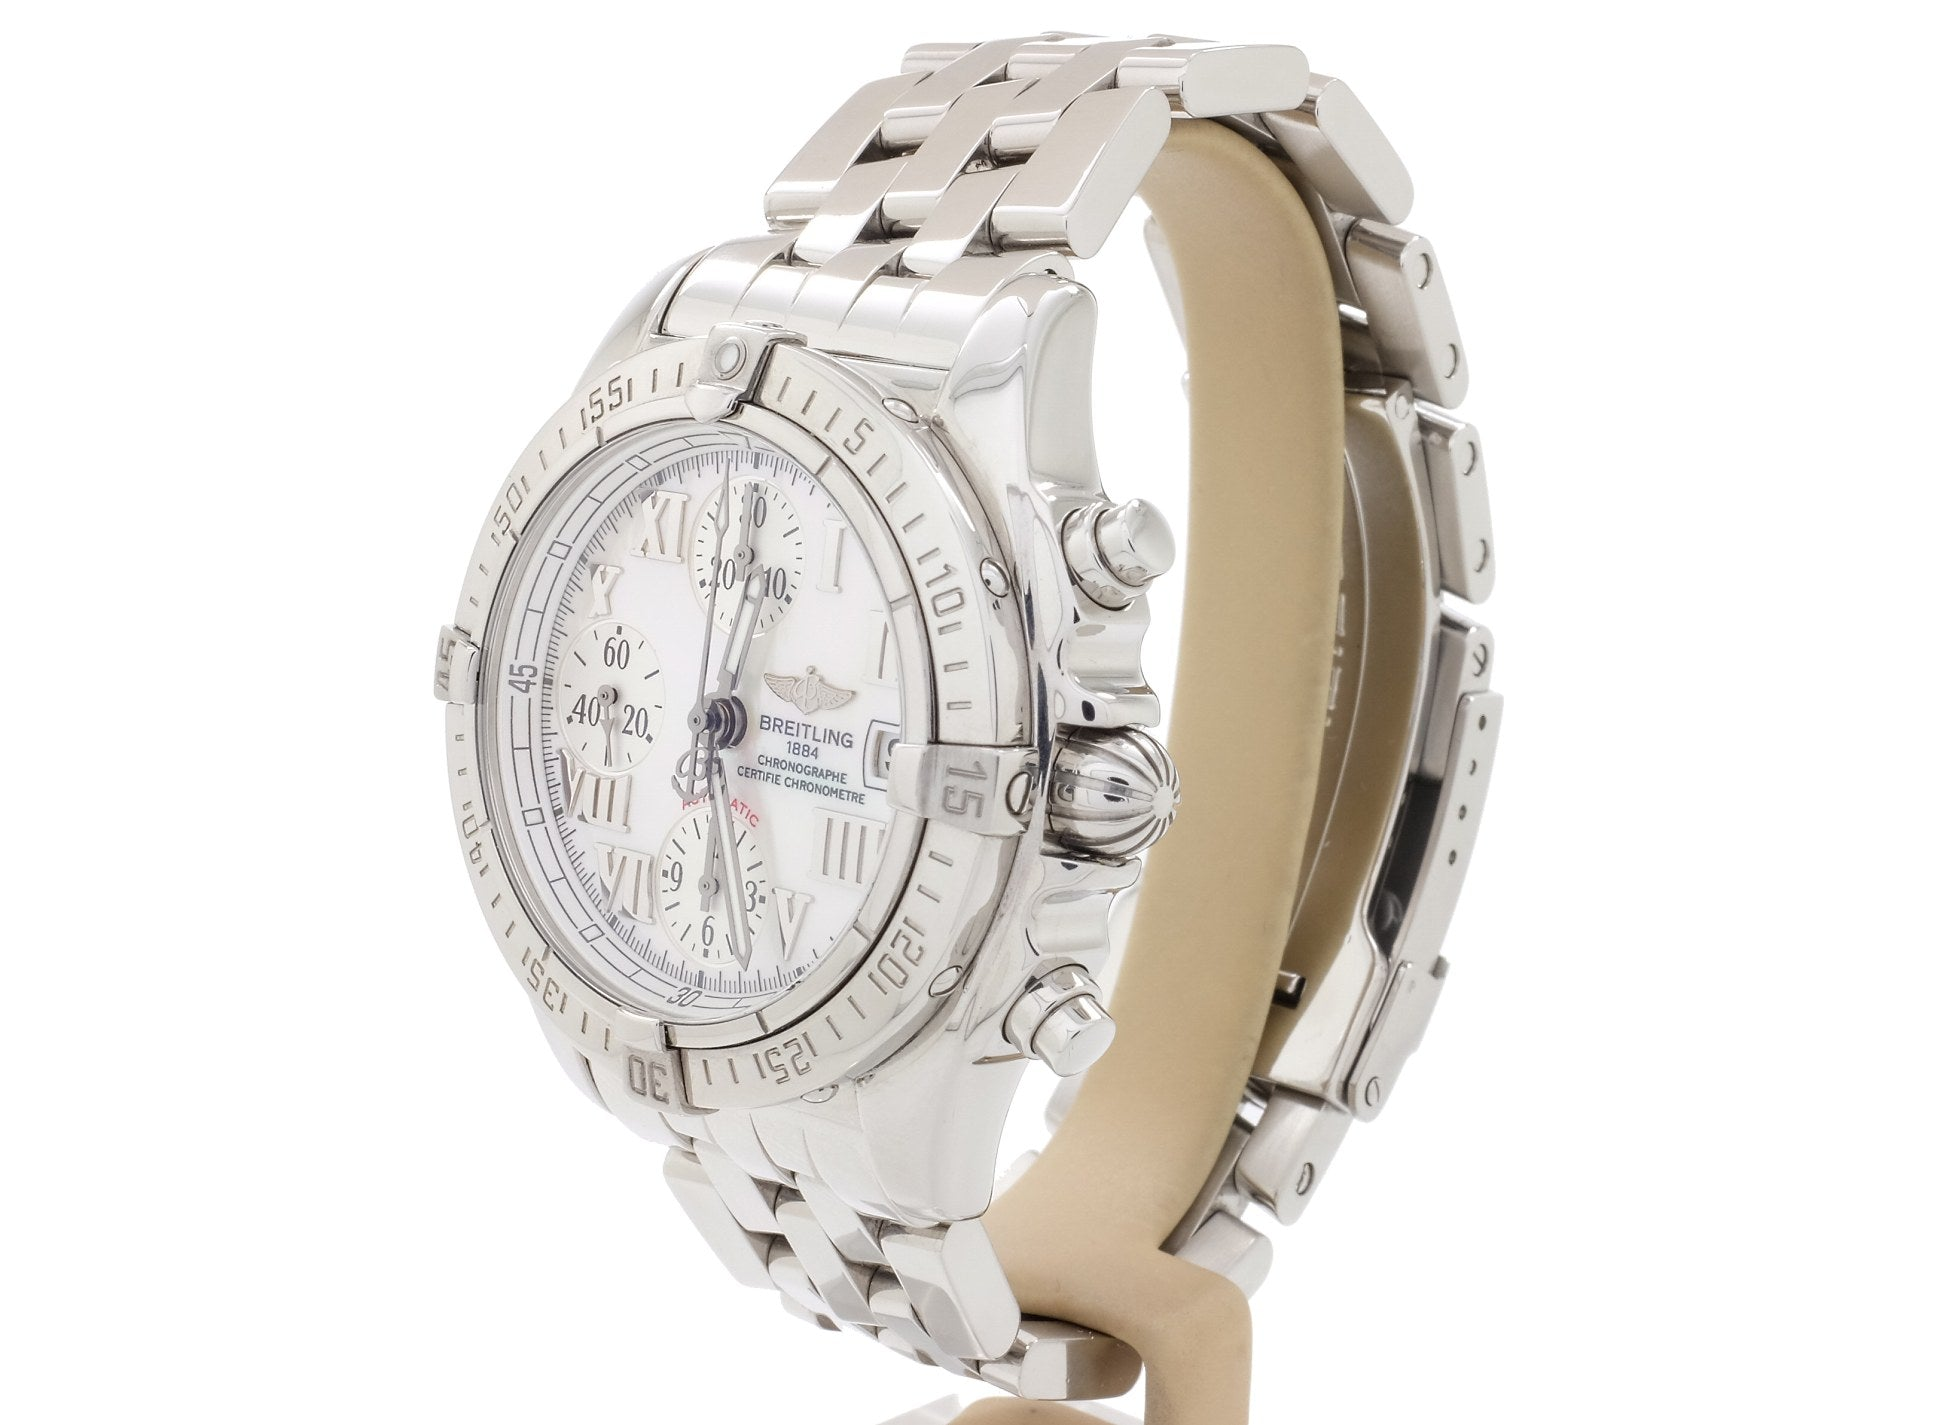 Breitling 'Chrono Cockpit' Model A13358 with Wow Factor and Mother Of Pearl Dial